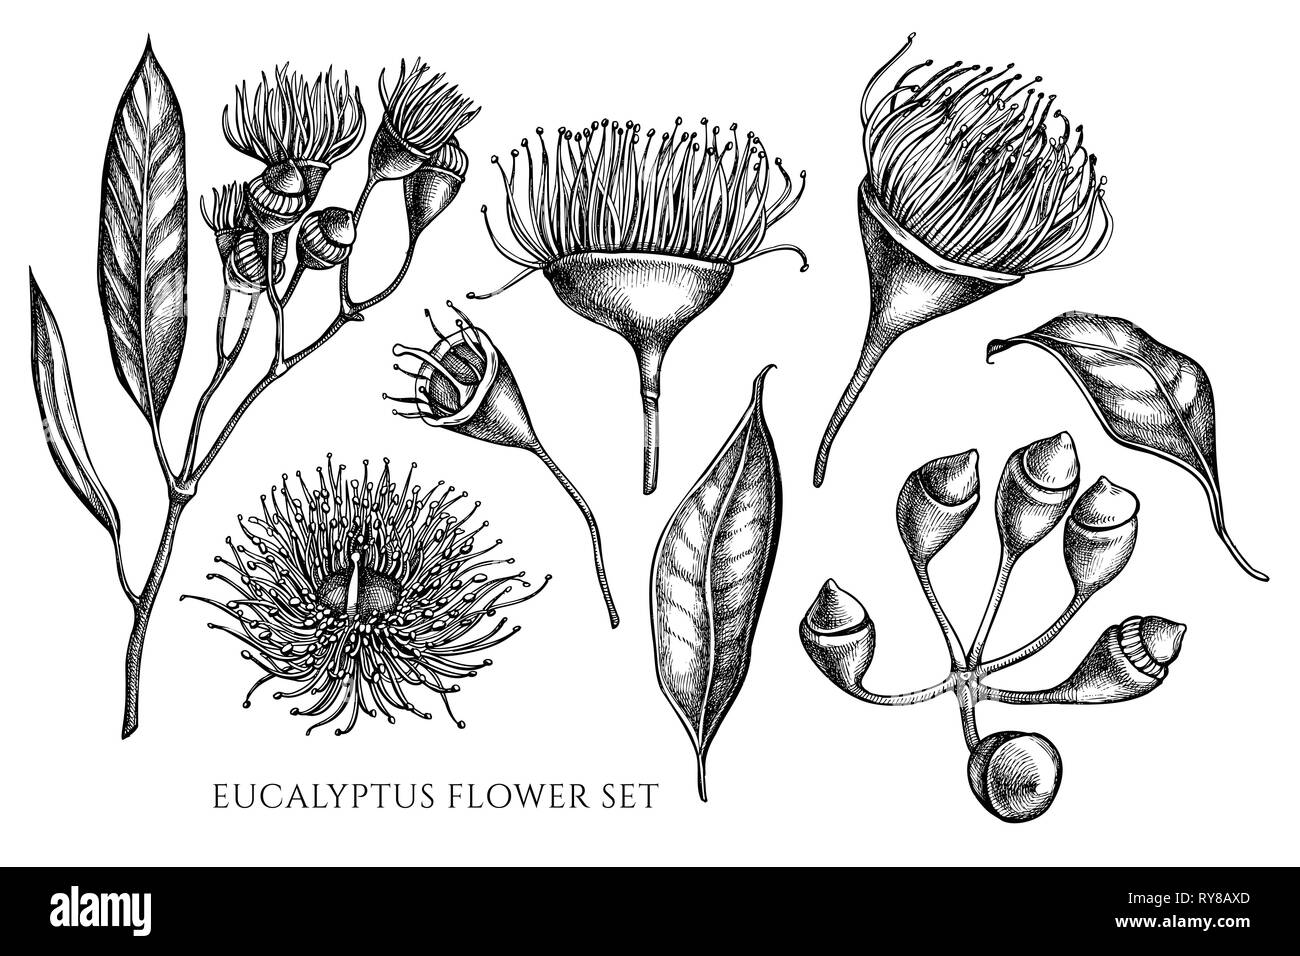 Vector collection of hand drawn black and white eucalyptus flower - Stock Image